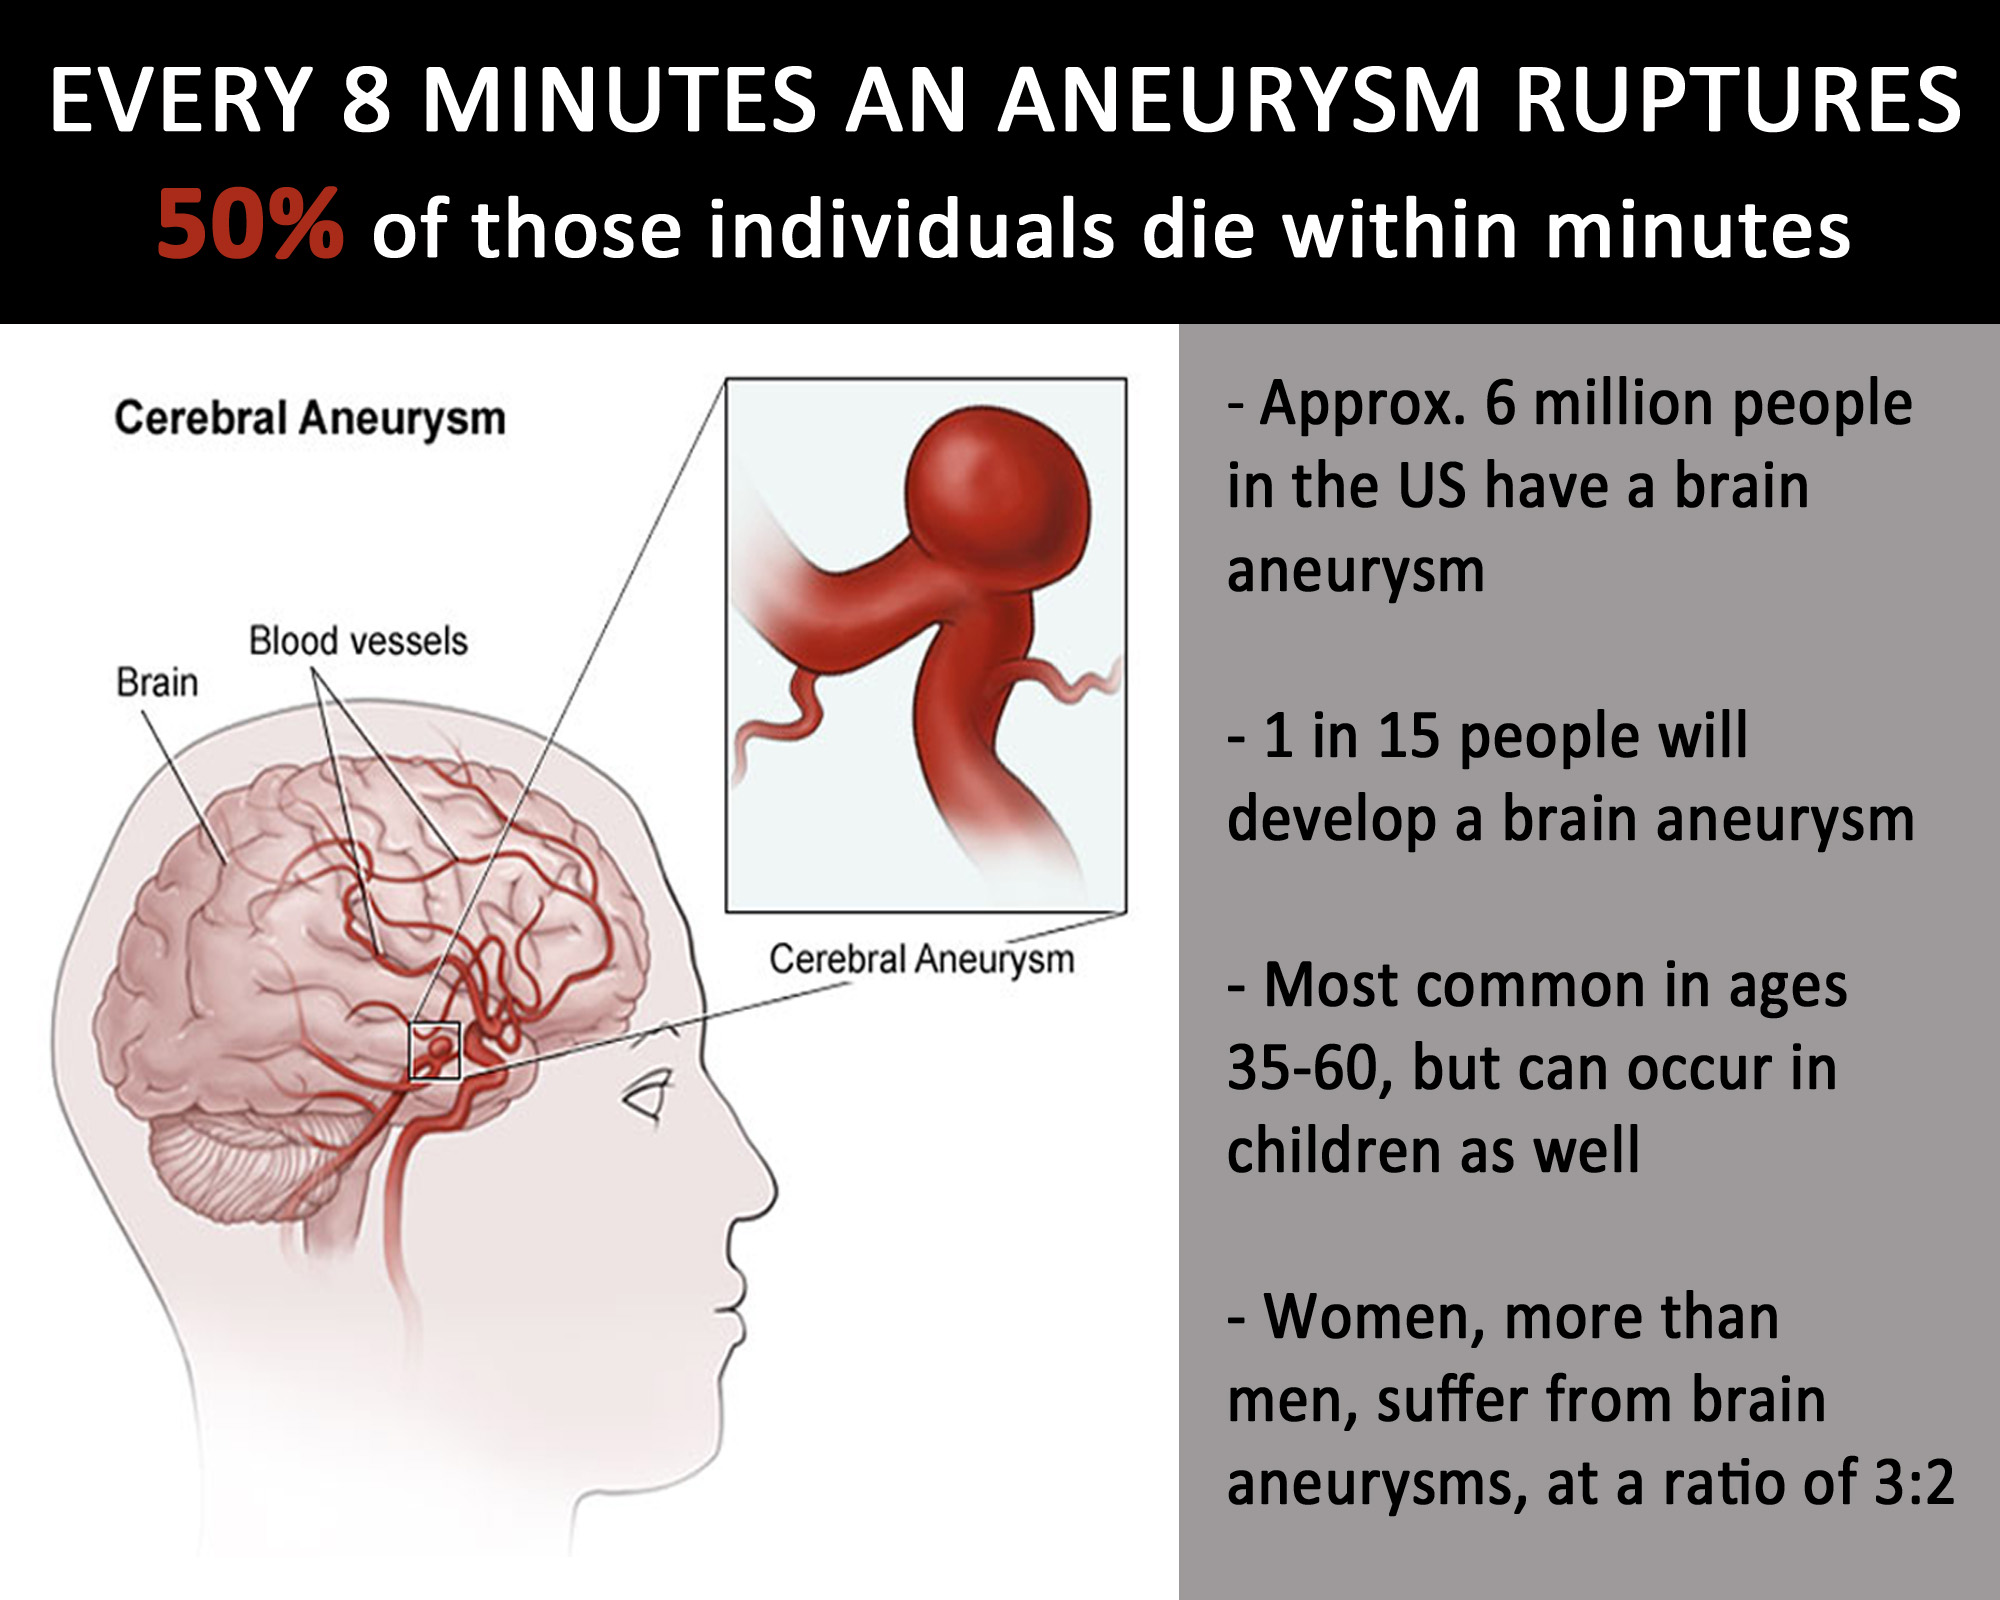 http://www.joeniekrofoundation.com/aneurysms/honoring-brain-aneurysm-awareness-week-march-12-18th/attachment/az-midday-chart-copy/